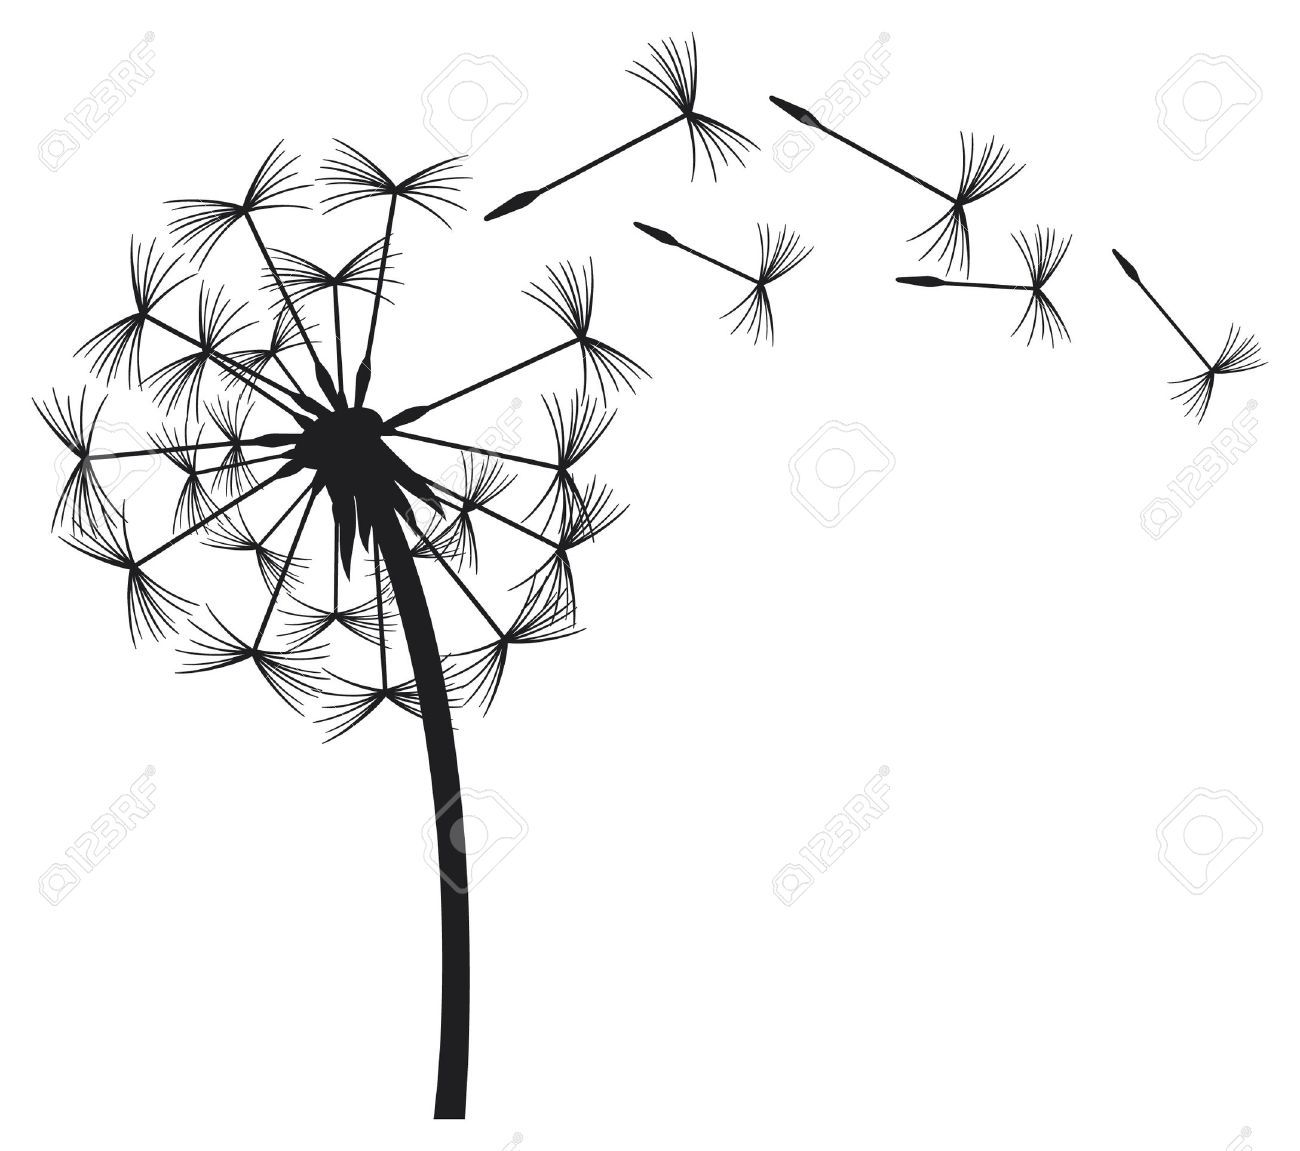 Blow pop clipart black and white vector vector library download Blowing Dandelion Stock Vector Illustration And Royalty Free ... vector library download